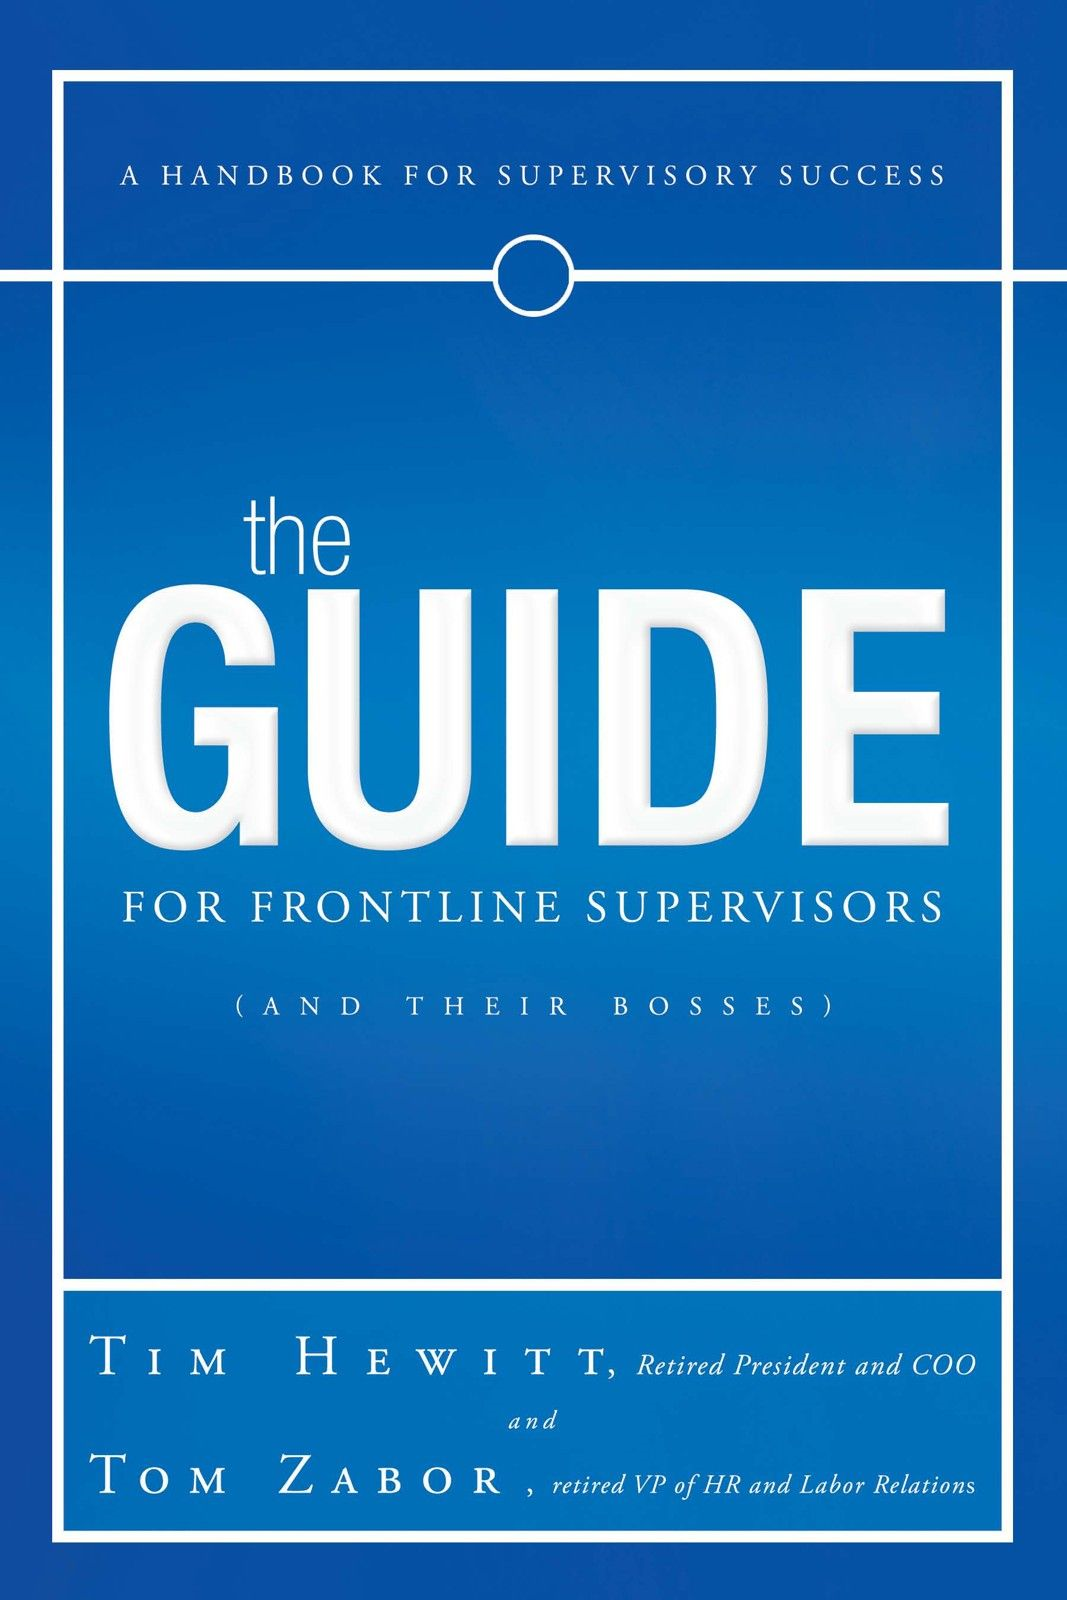 The Guide for Frontline Supervisors (and Their Bosses)